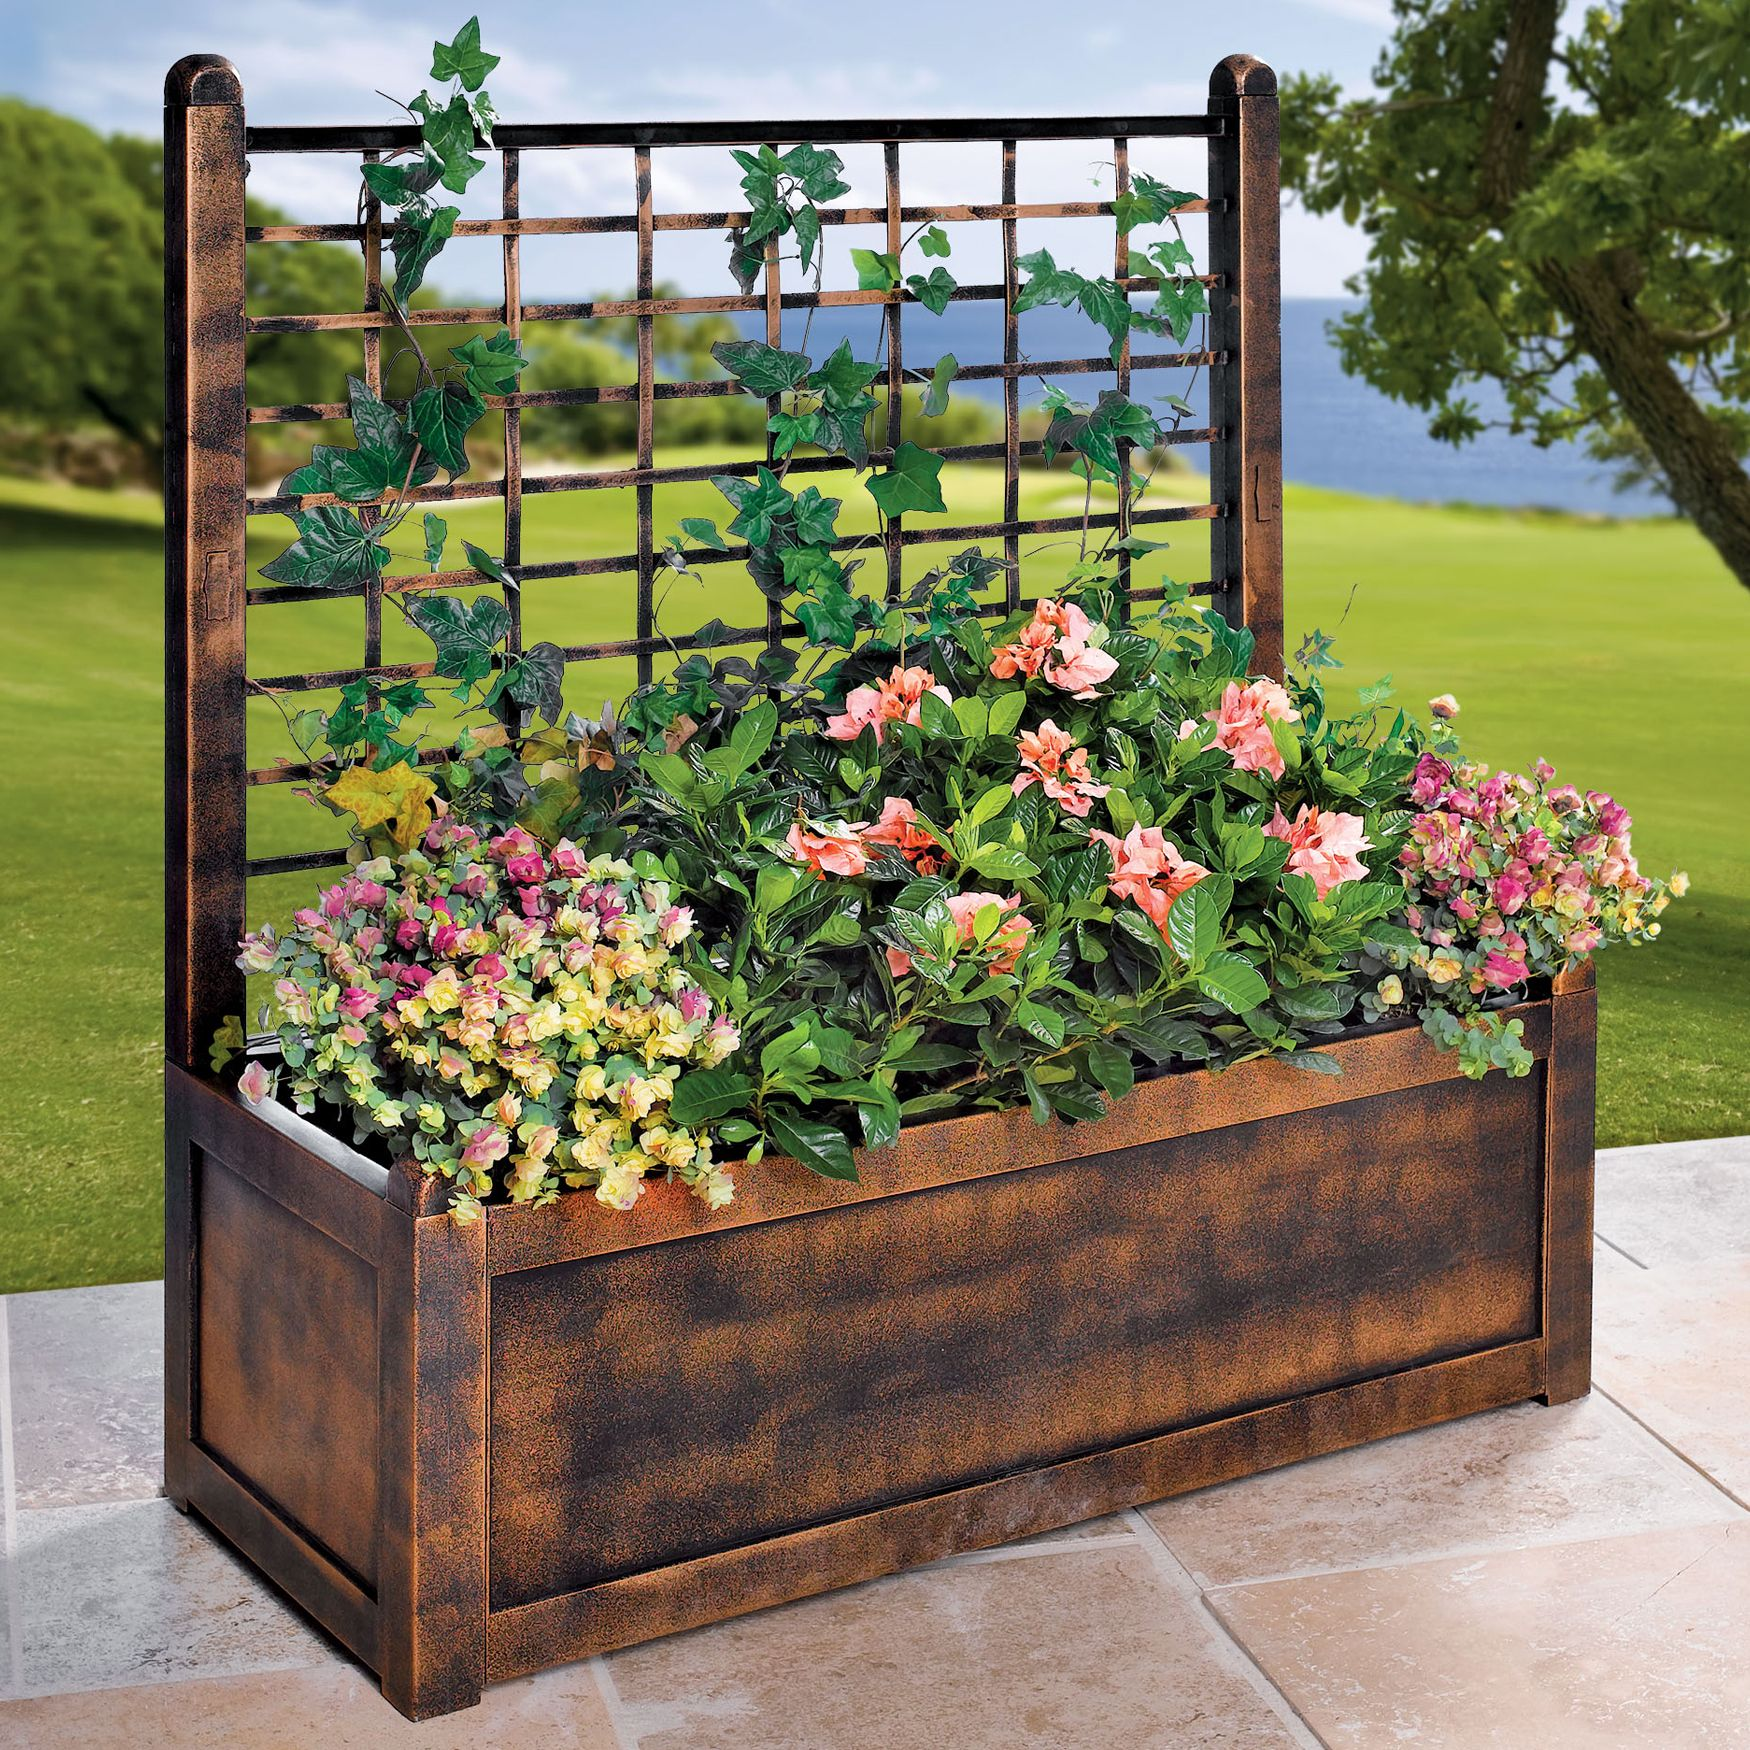 Flower Box With Trellis Sale Brylanehome We Have A Wooden Trunk Box My Husband Made And This Is A Gr Garden Boxes Garden Trellis Planter Box With Trellis